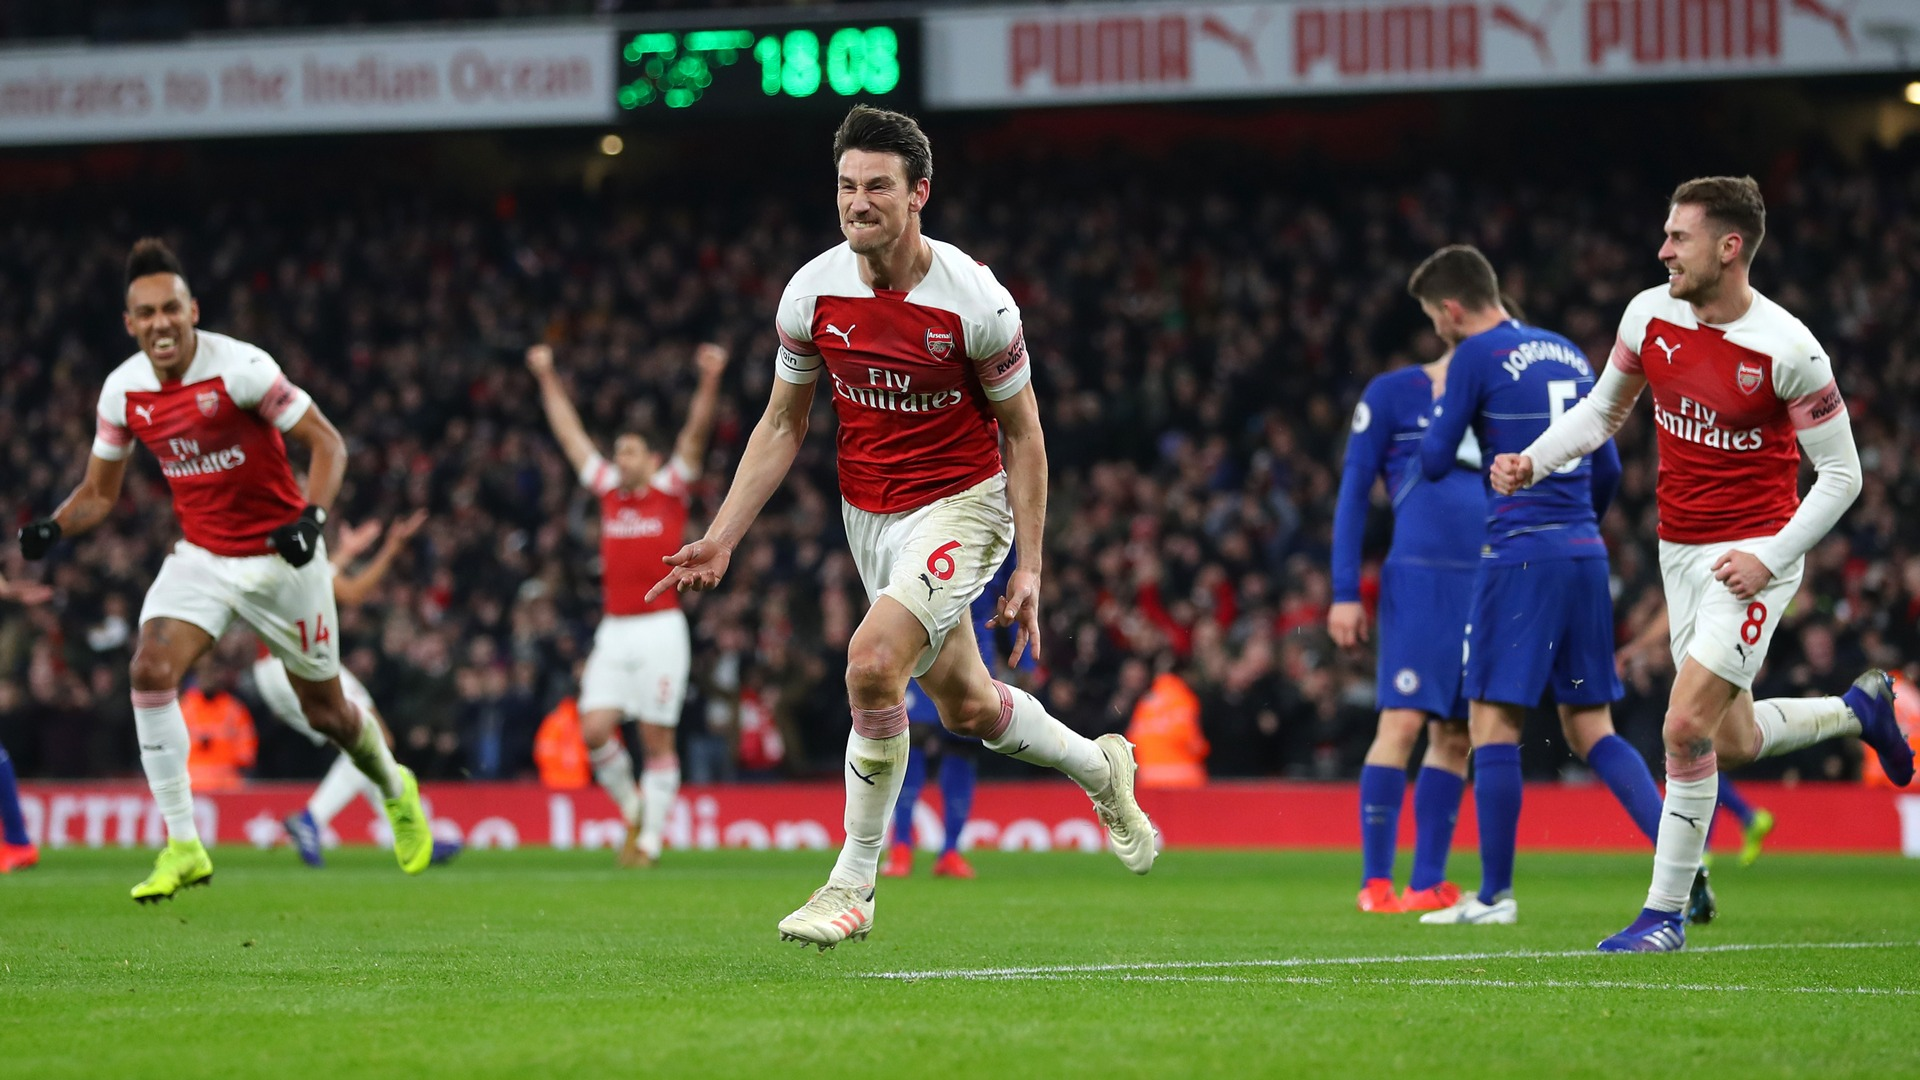 Arsenal 2-0 Chelsea: Emery's Ramsey masterstroke breathes new life into top-four hopes